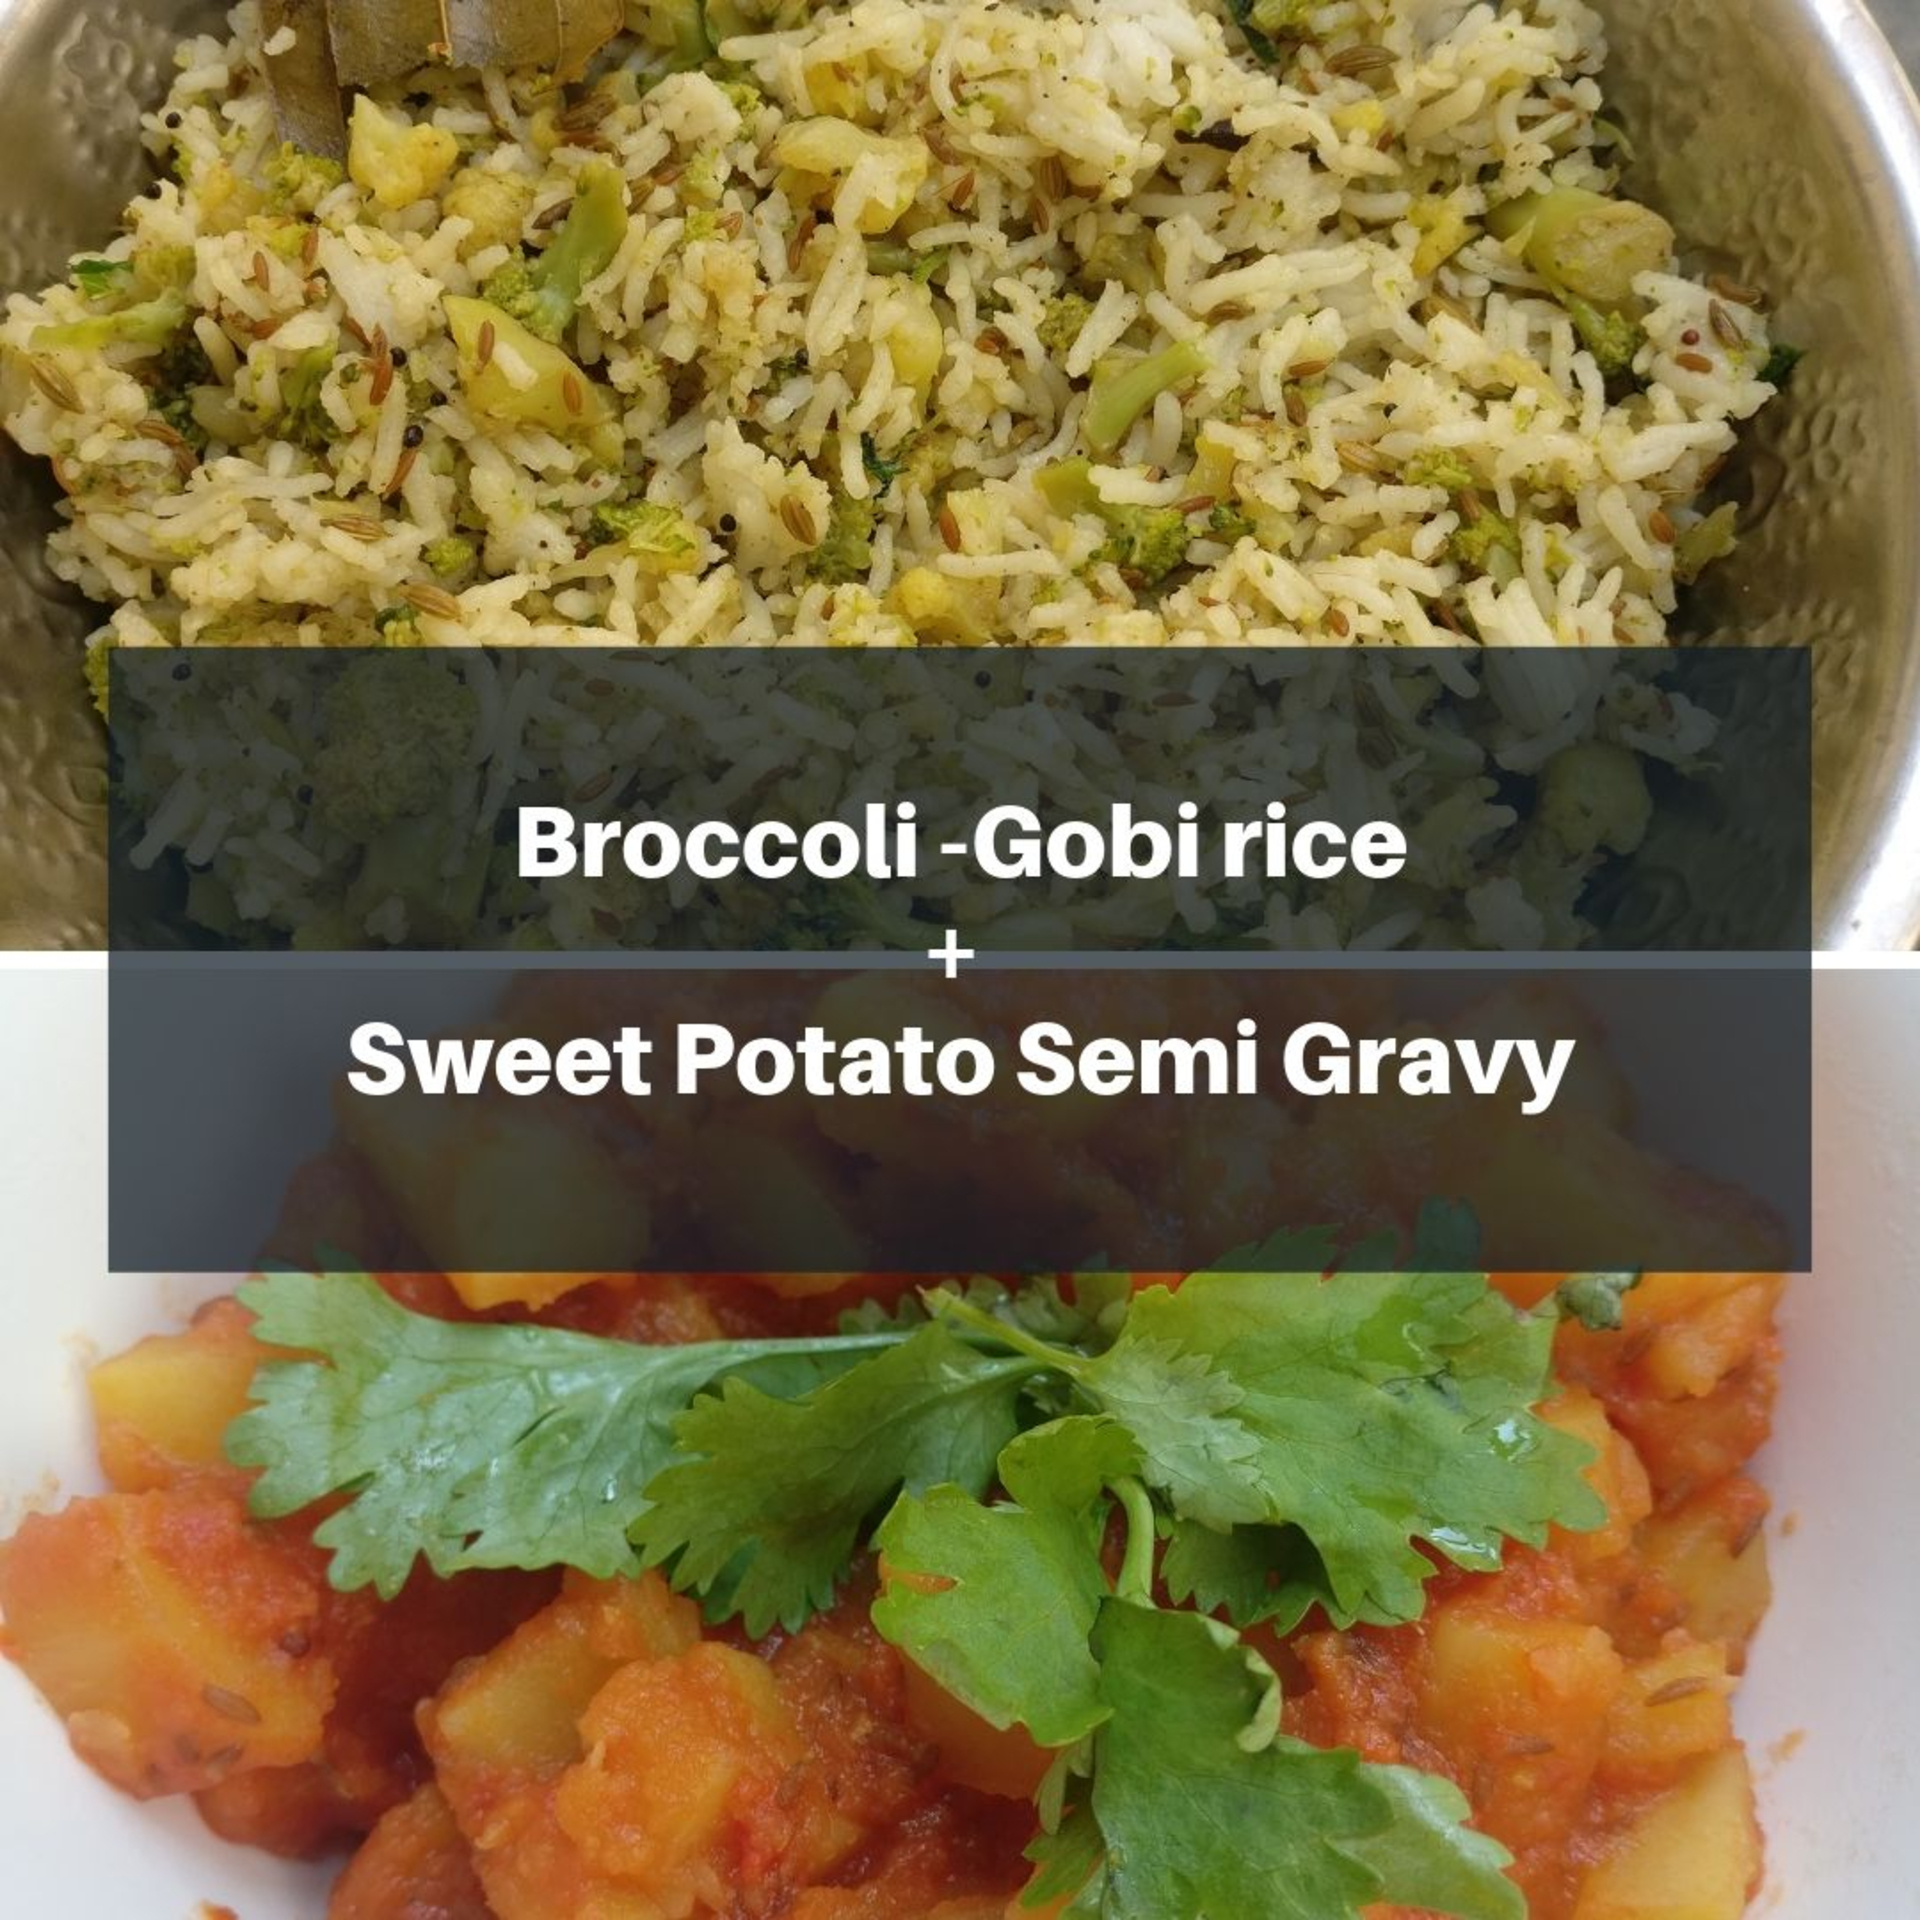 Broccoli and Gobi Rice + Sweet Potato Semi Gravy image